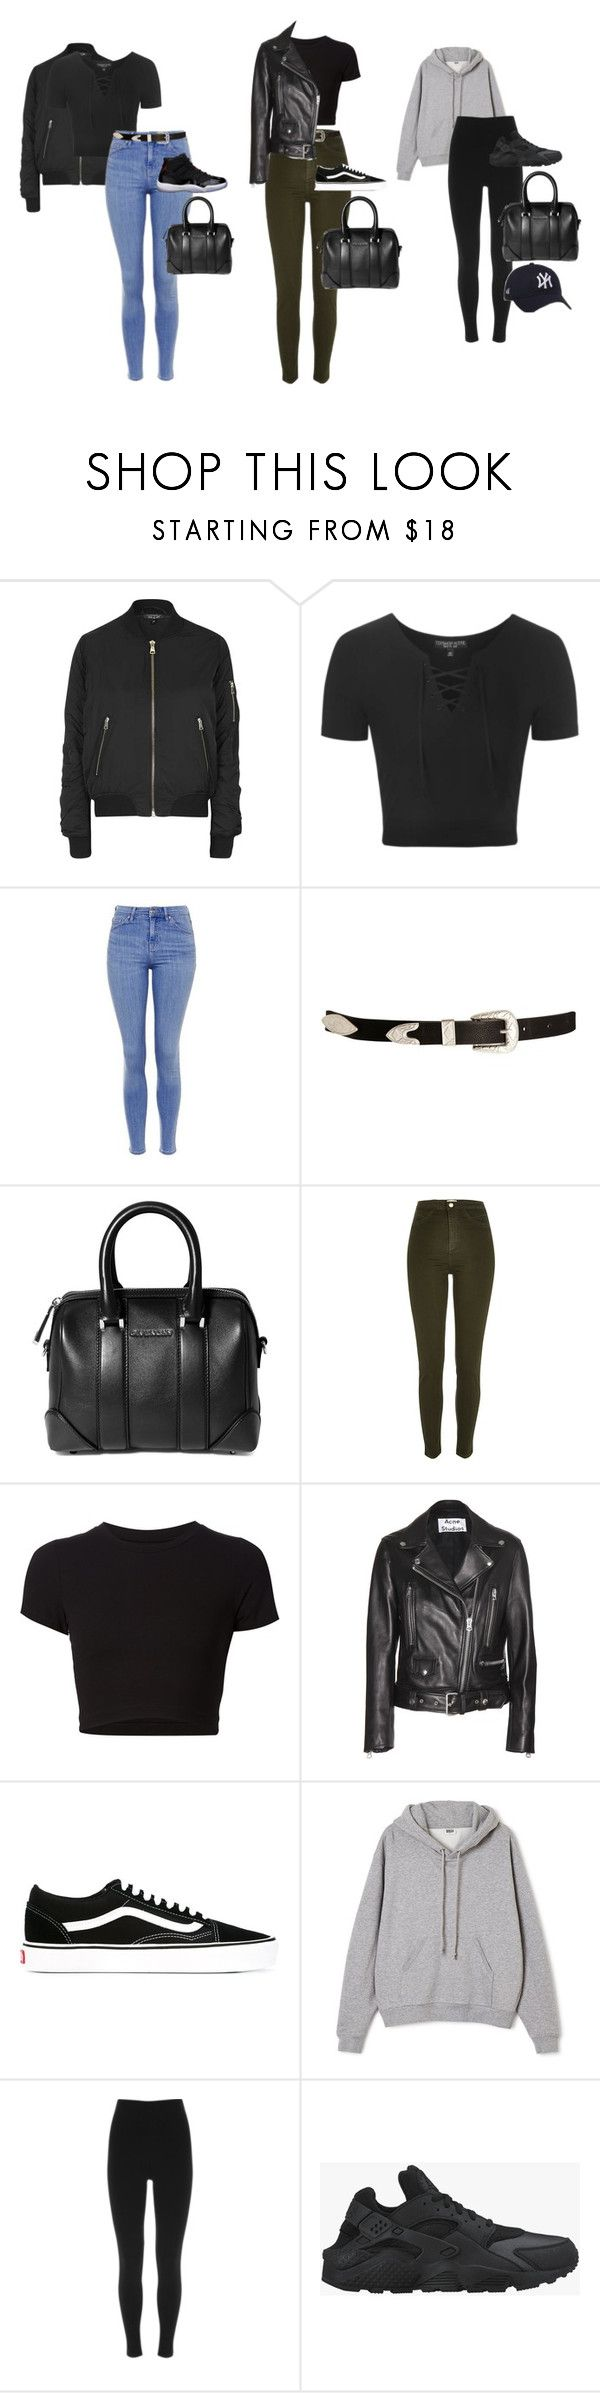 """Unbenannt #2262"" by xaieaxx ❤ liked on Polyvore featuring Topshop, Freaker, ASOS, Givenchy, River Island, Getting Back To Square One, Acne Studios, Vans, Ailin and Mint Velvet"